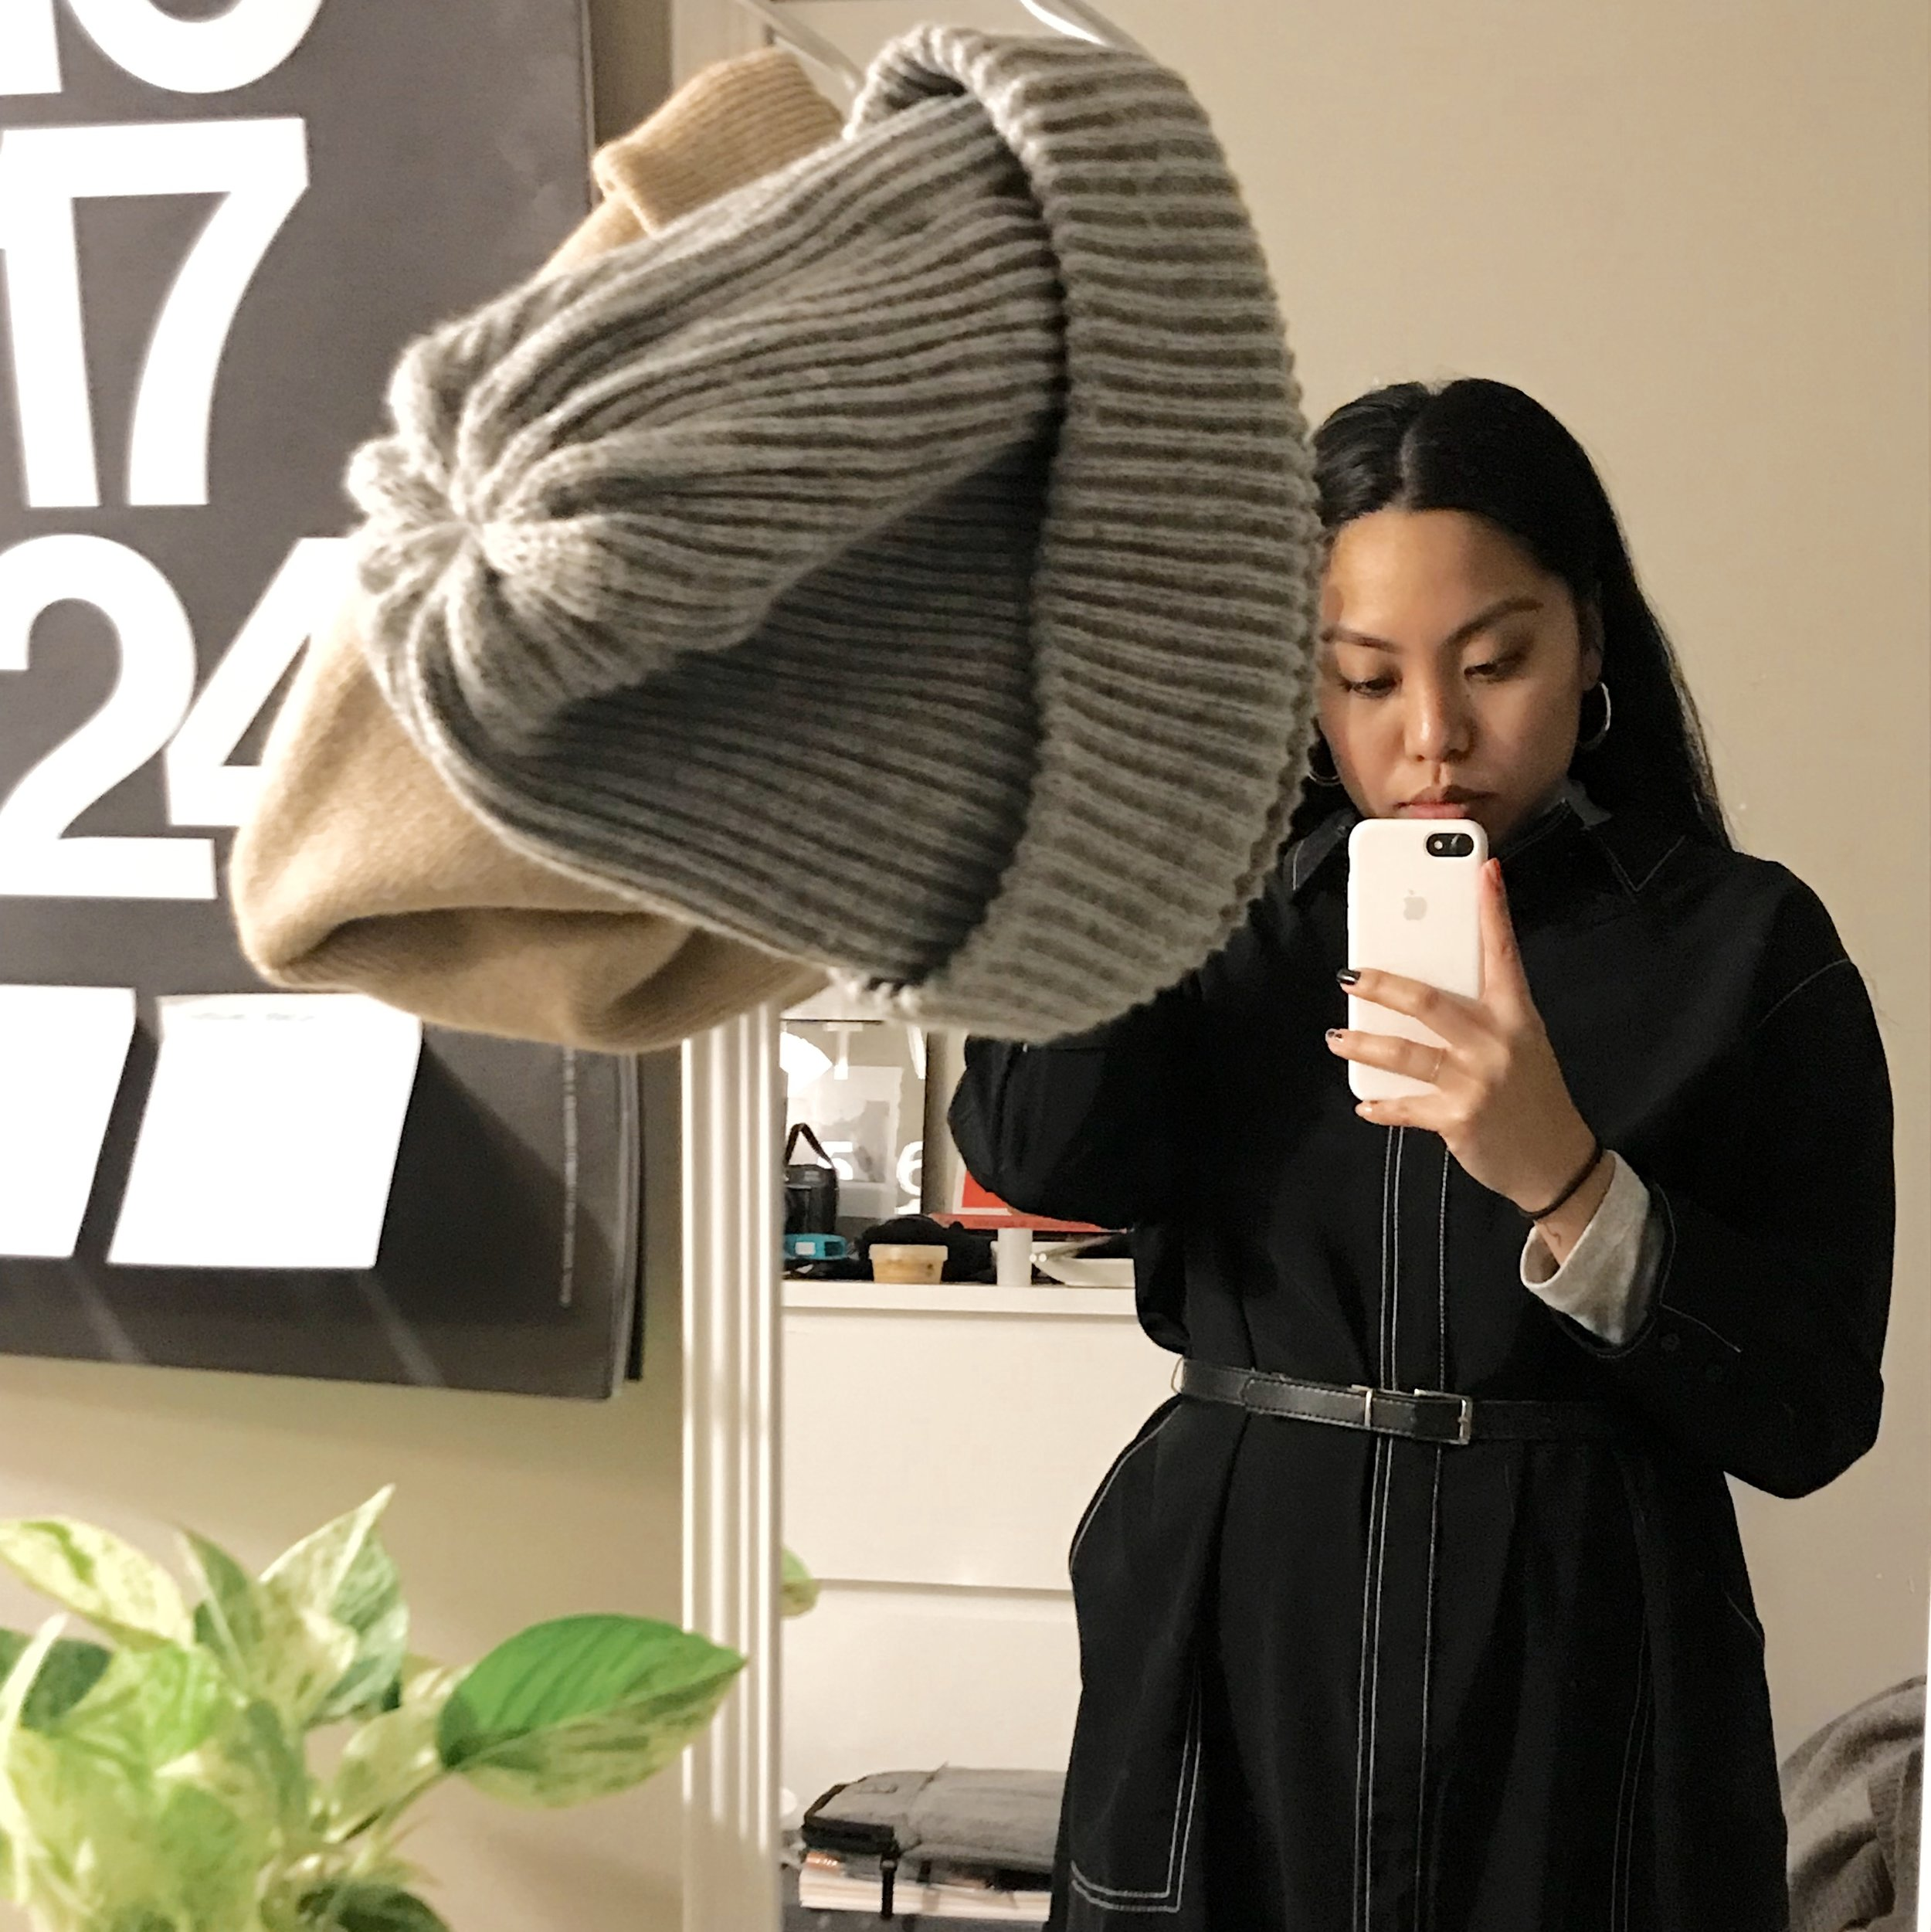 outfit ft. the beanie rotation of the week. Thank you Muji hooks ((((: